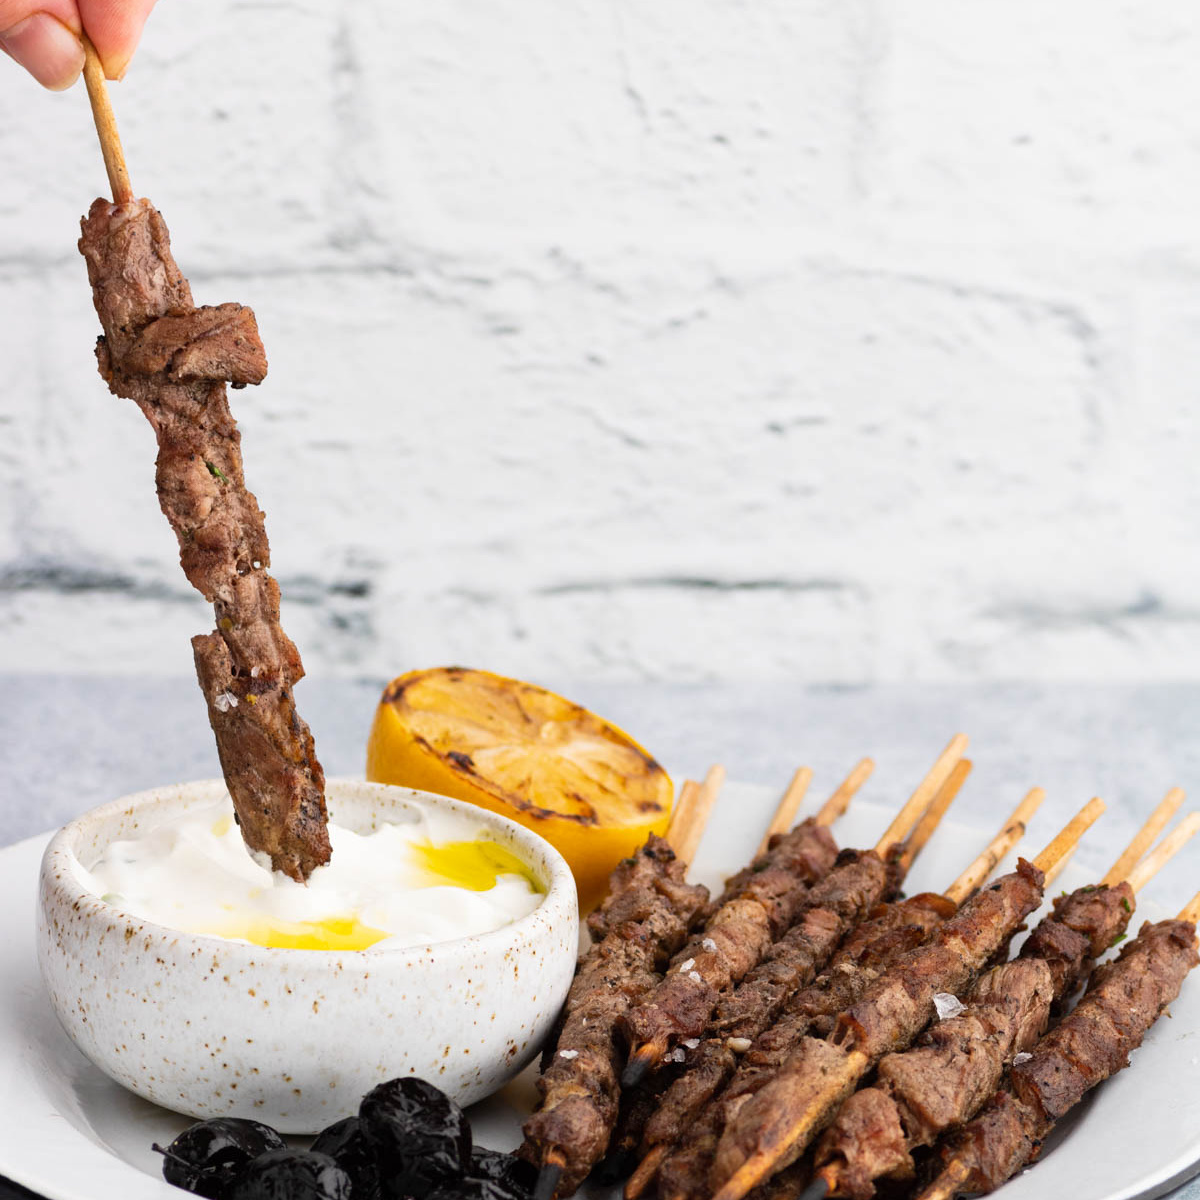 Grilled spiedini skewers on a white plate with one skewer being dipped into the tzatziki sauce